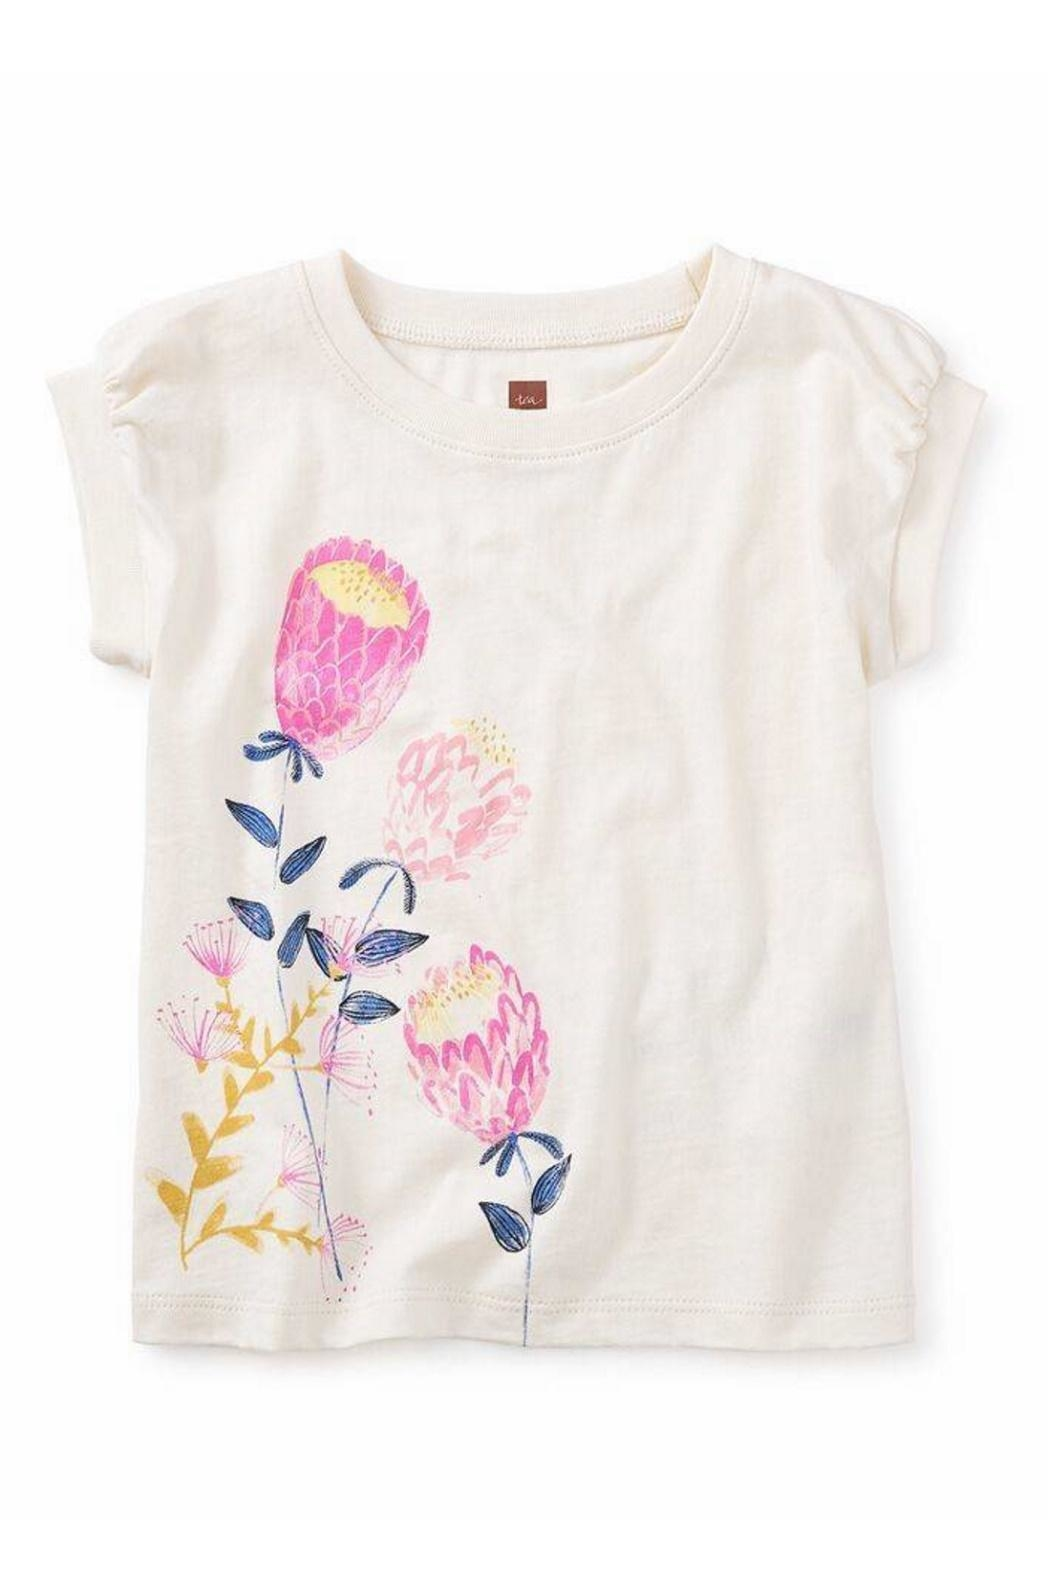 Tea Collection Banksia Graphic Tee - Main Image